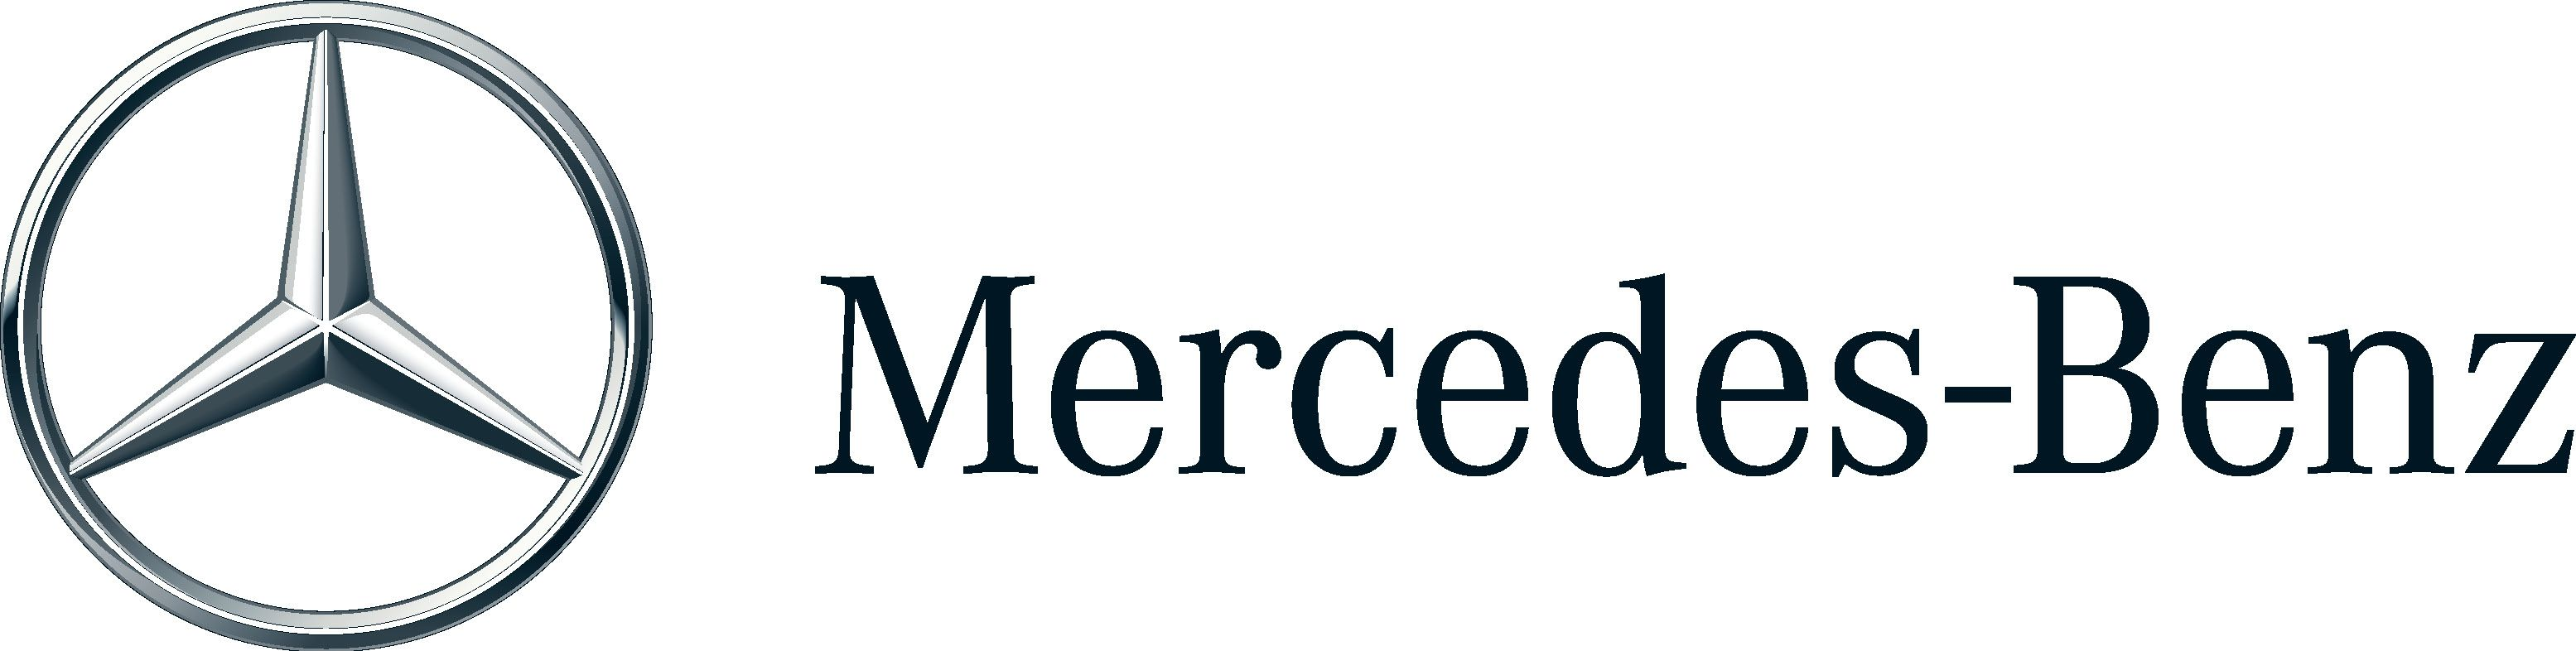 Mercedes Benz Sugarland Service >> Service And Repair Of Mercedes Benz Vehicles